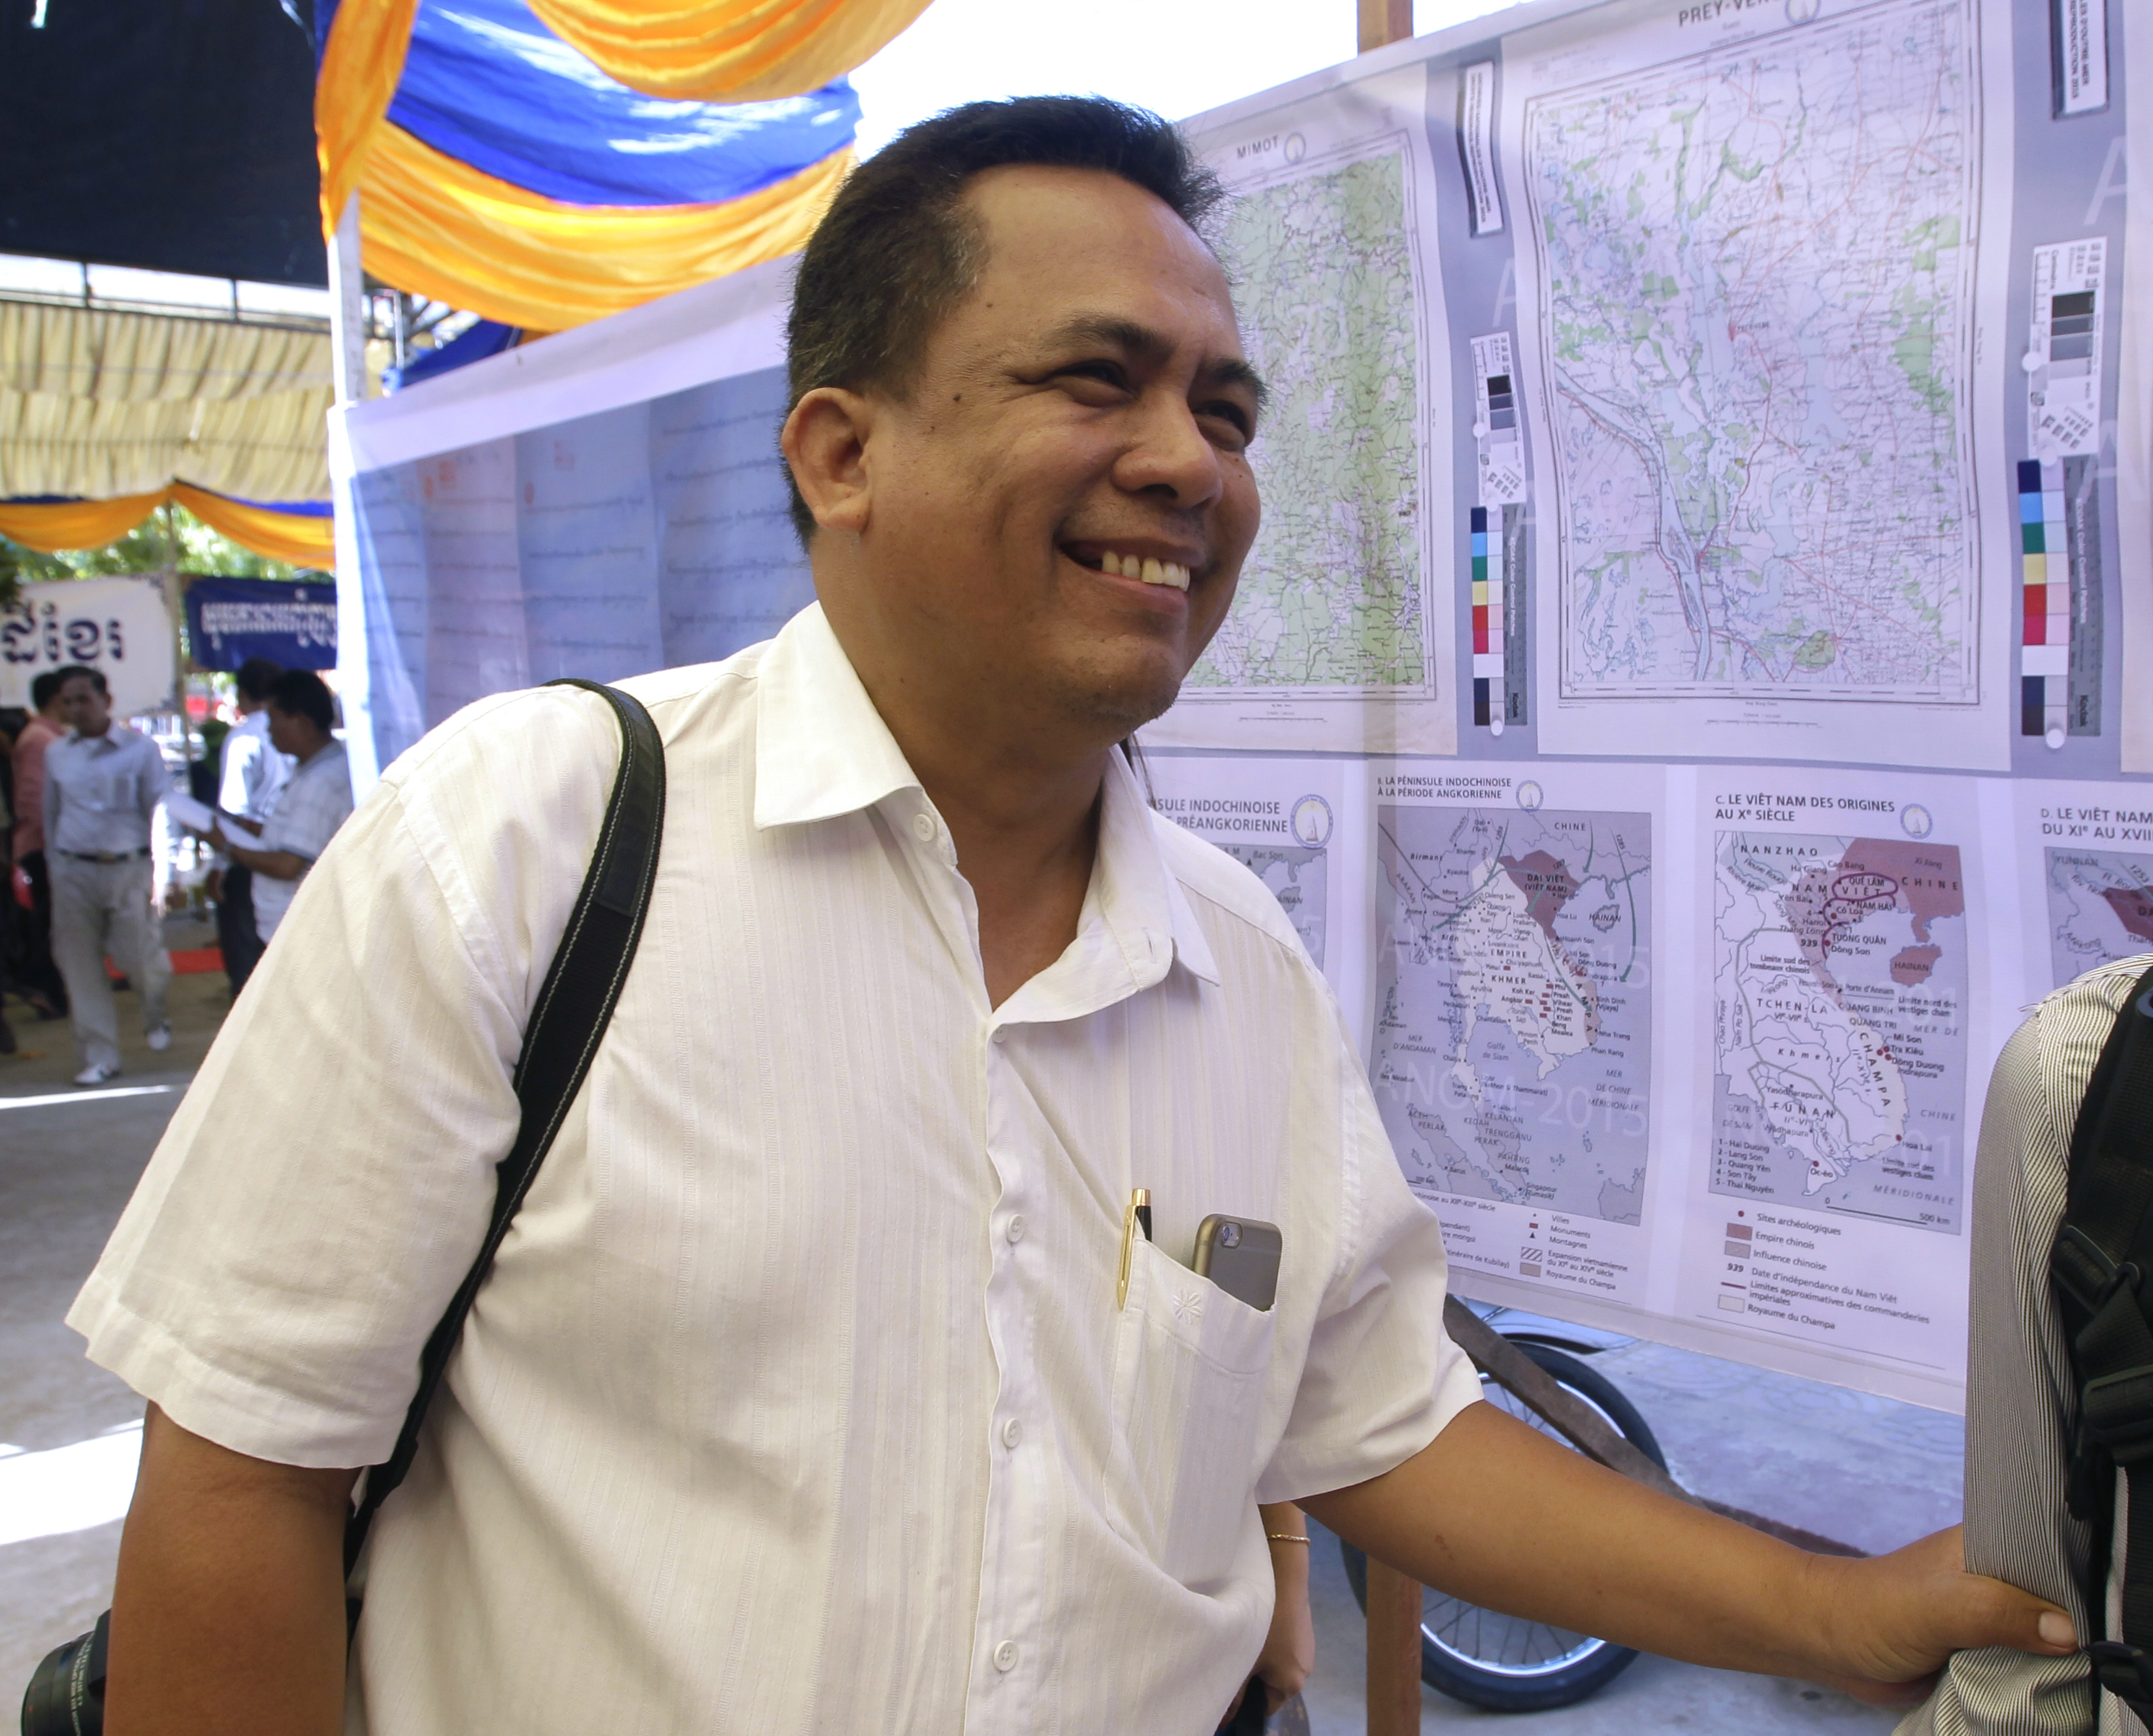 article.wn.com Cambodia's explanation for killing of activist draws doubt